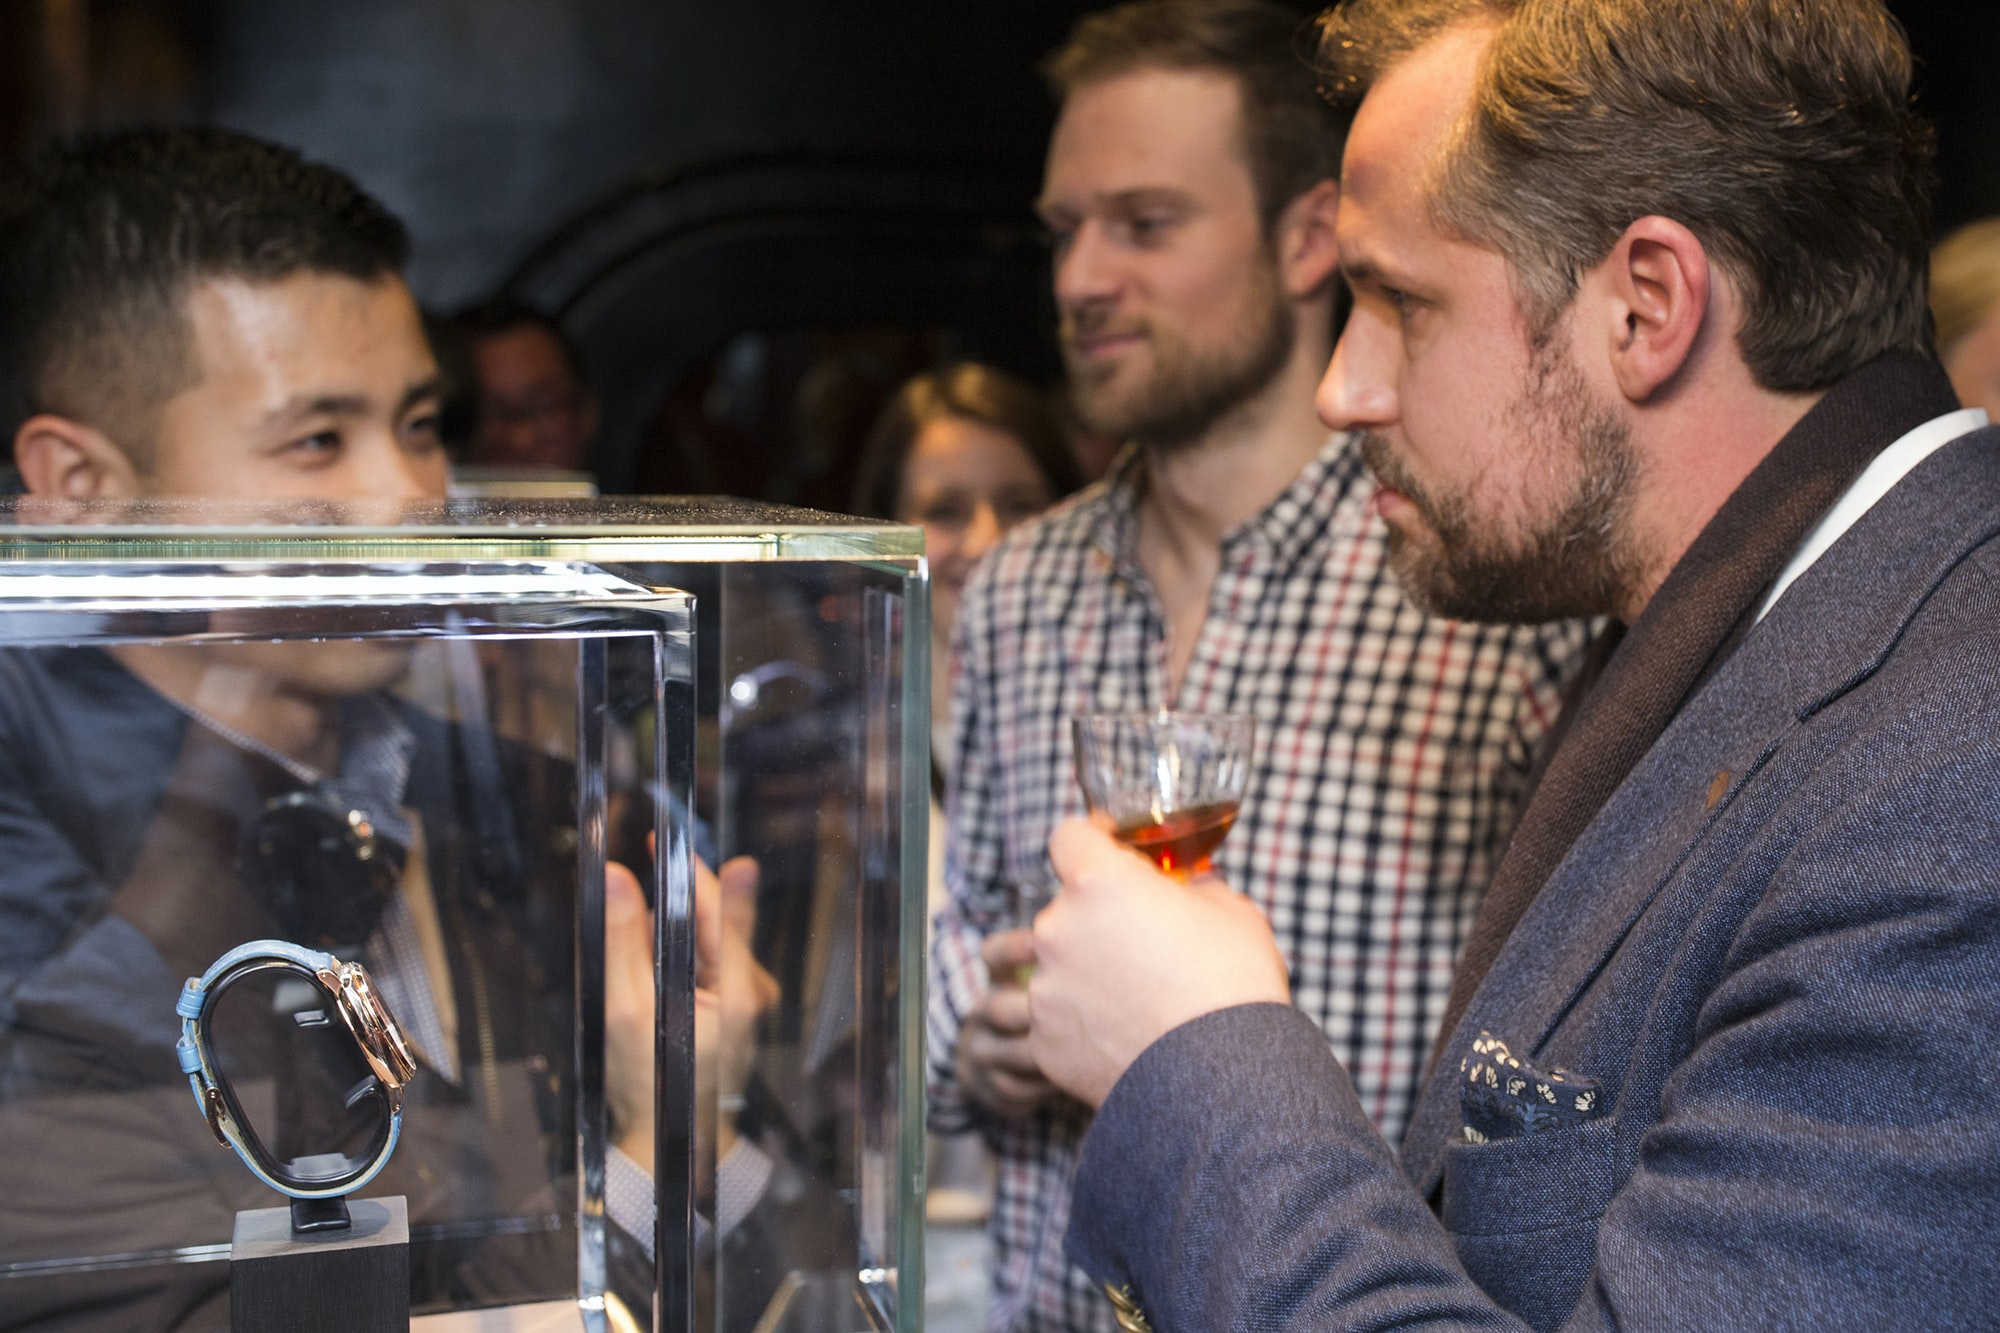 Photo Report: Celebrating The Panerai Luminor Due Collection In New York Photo Report: Celebrating The Panerai Luminor Due Collection In New York  B89A7402